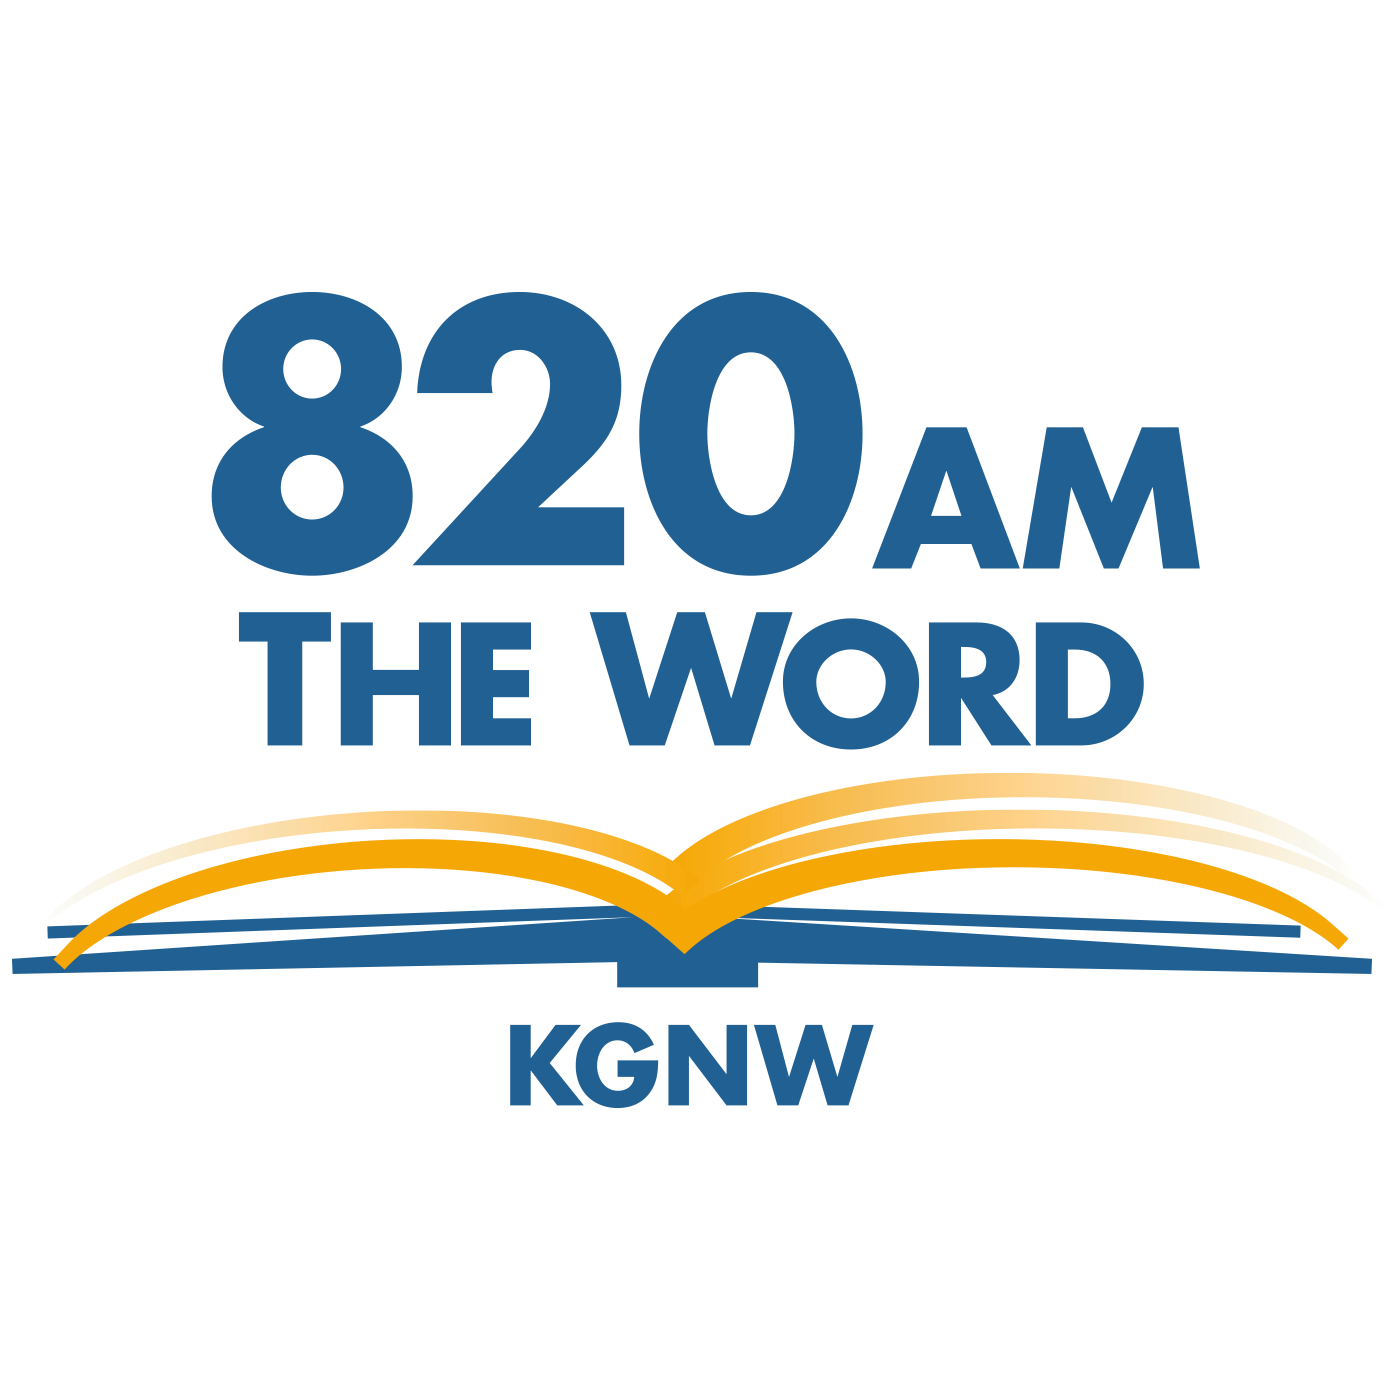 820 AM The Word KGNW